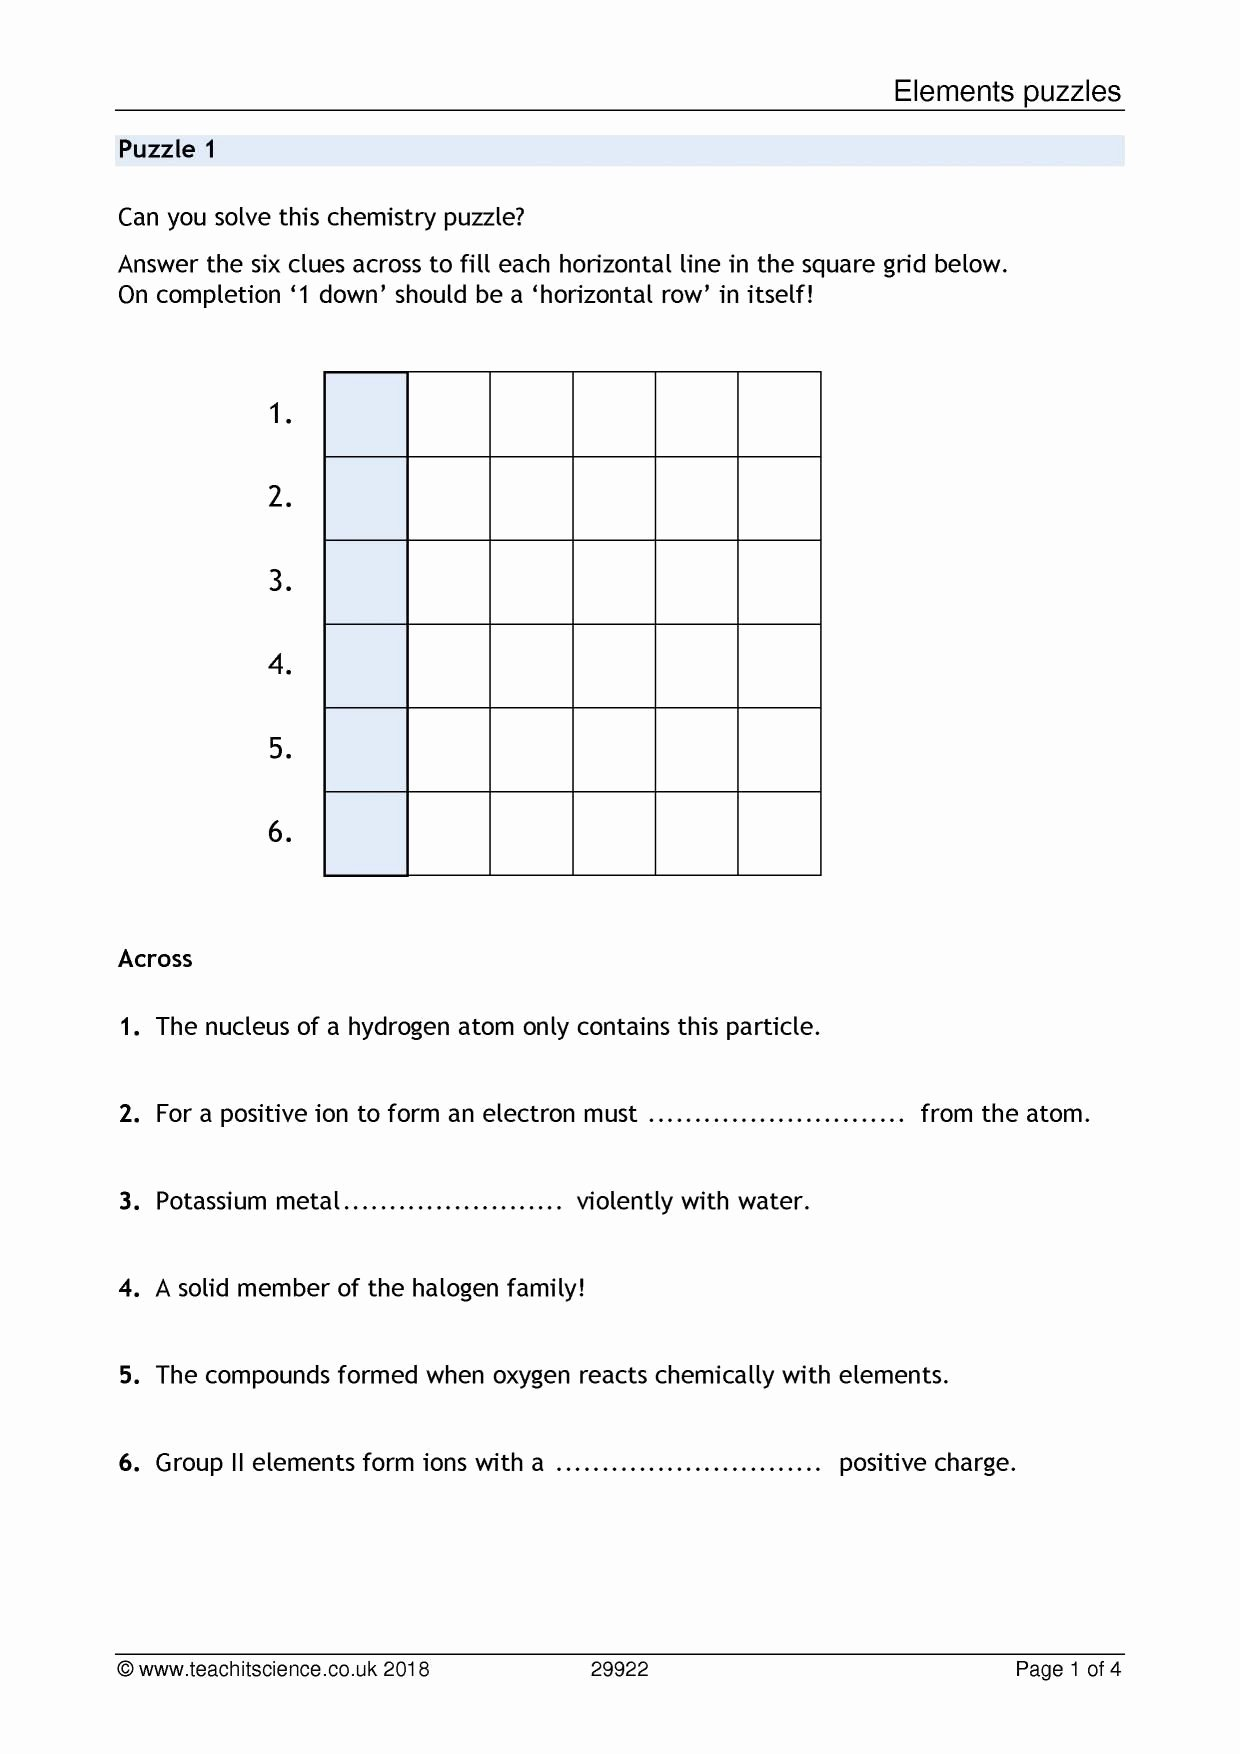 Elements Compounds Mixtures Worksheet Answers Awesome Elements Pounds and Mixtures 1 Worksheet Answers